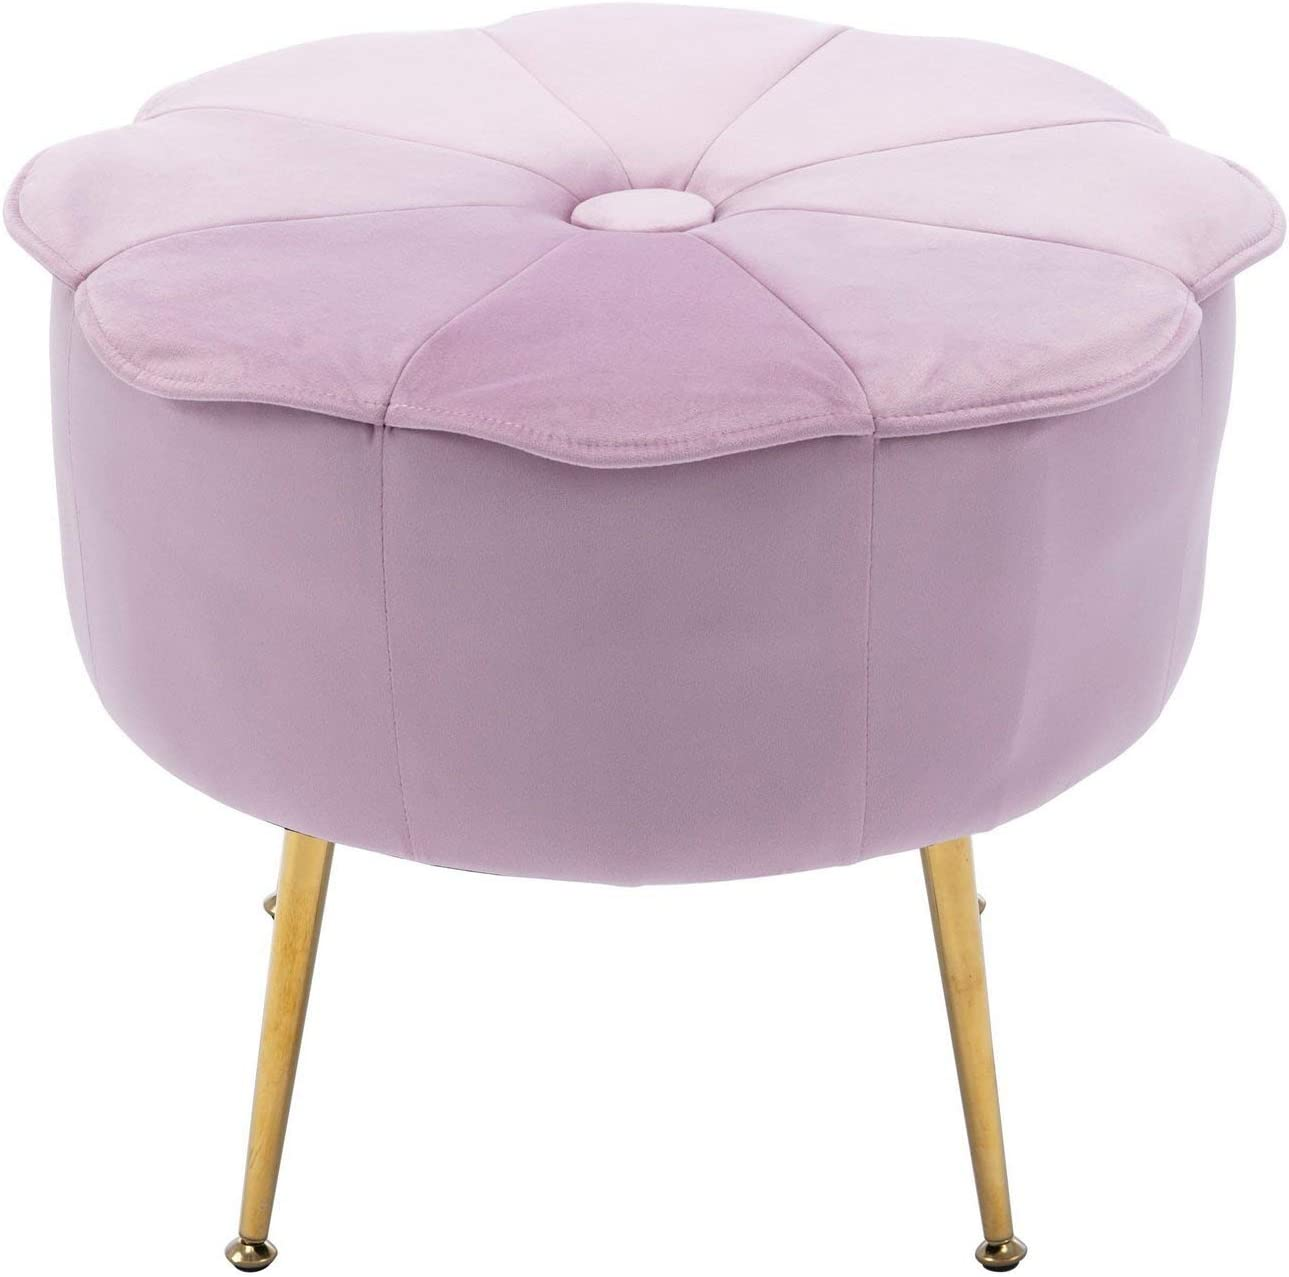 HNY Round Small Pouf Complete Free Shipping Ottoman Stool OFFicial Tufted R Velvet Foot Ottomans